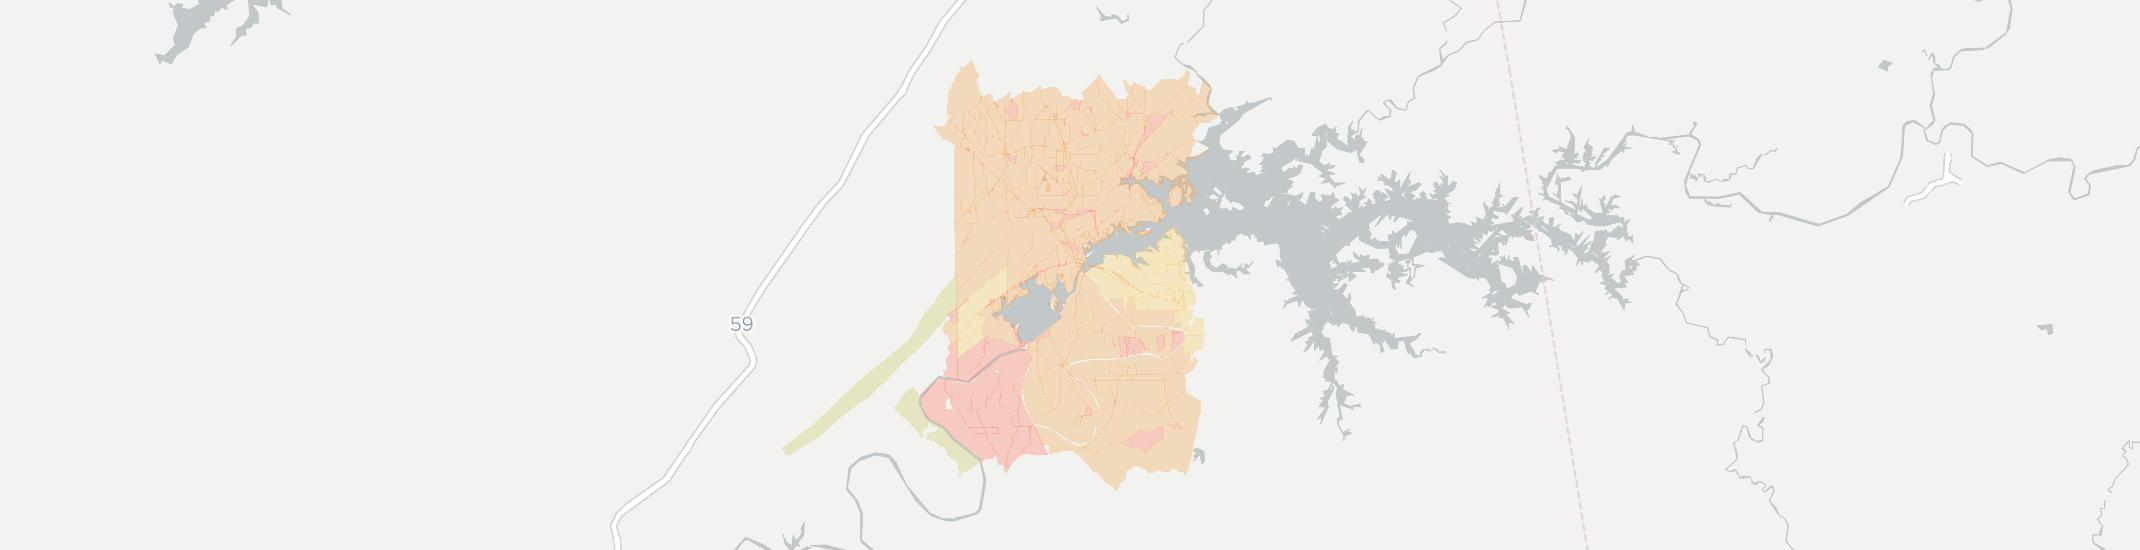 Leesburg Internet Competition Map. Click for interactive map.